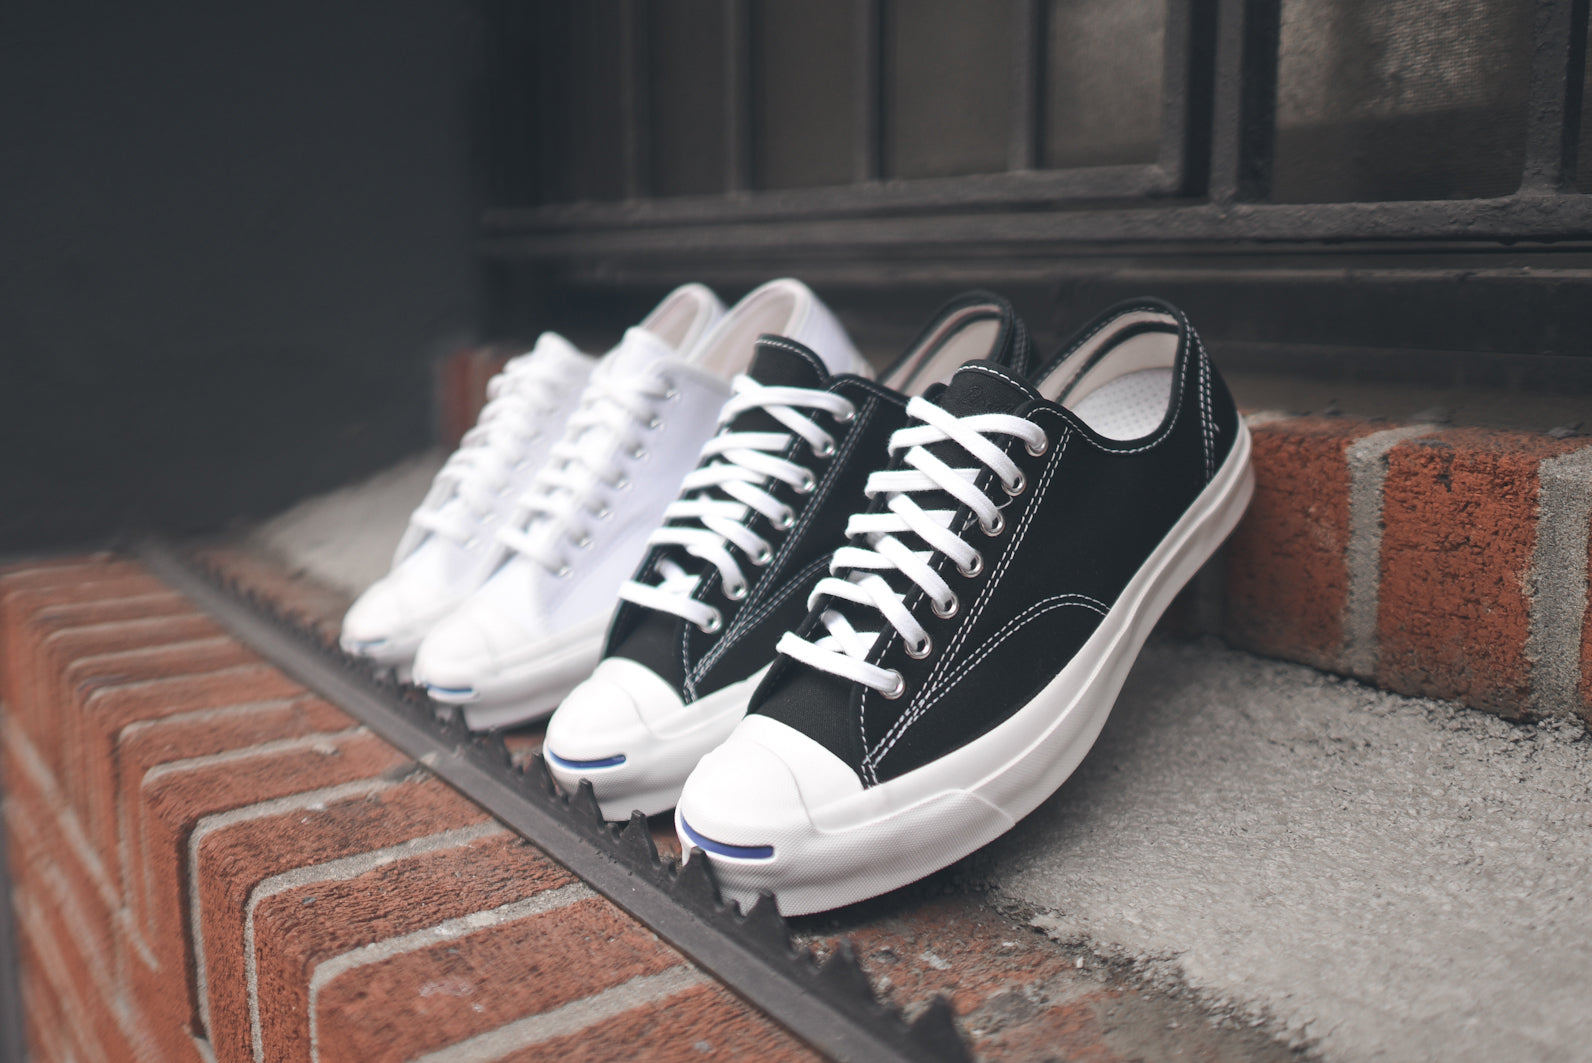 b1b24c36920 Converse Jack Purcell Signature Pack   KITH NYC – Kith